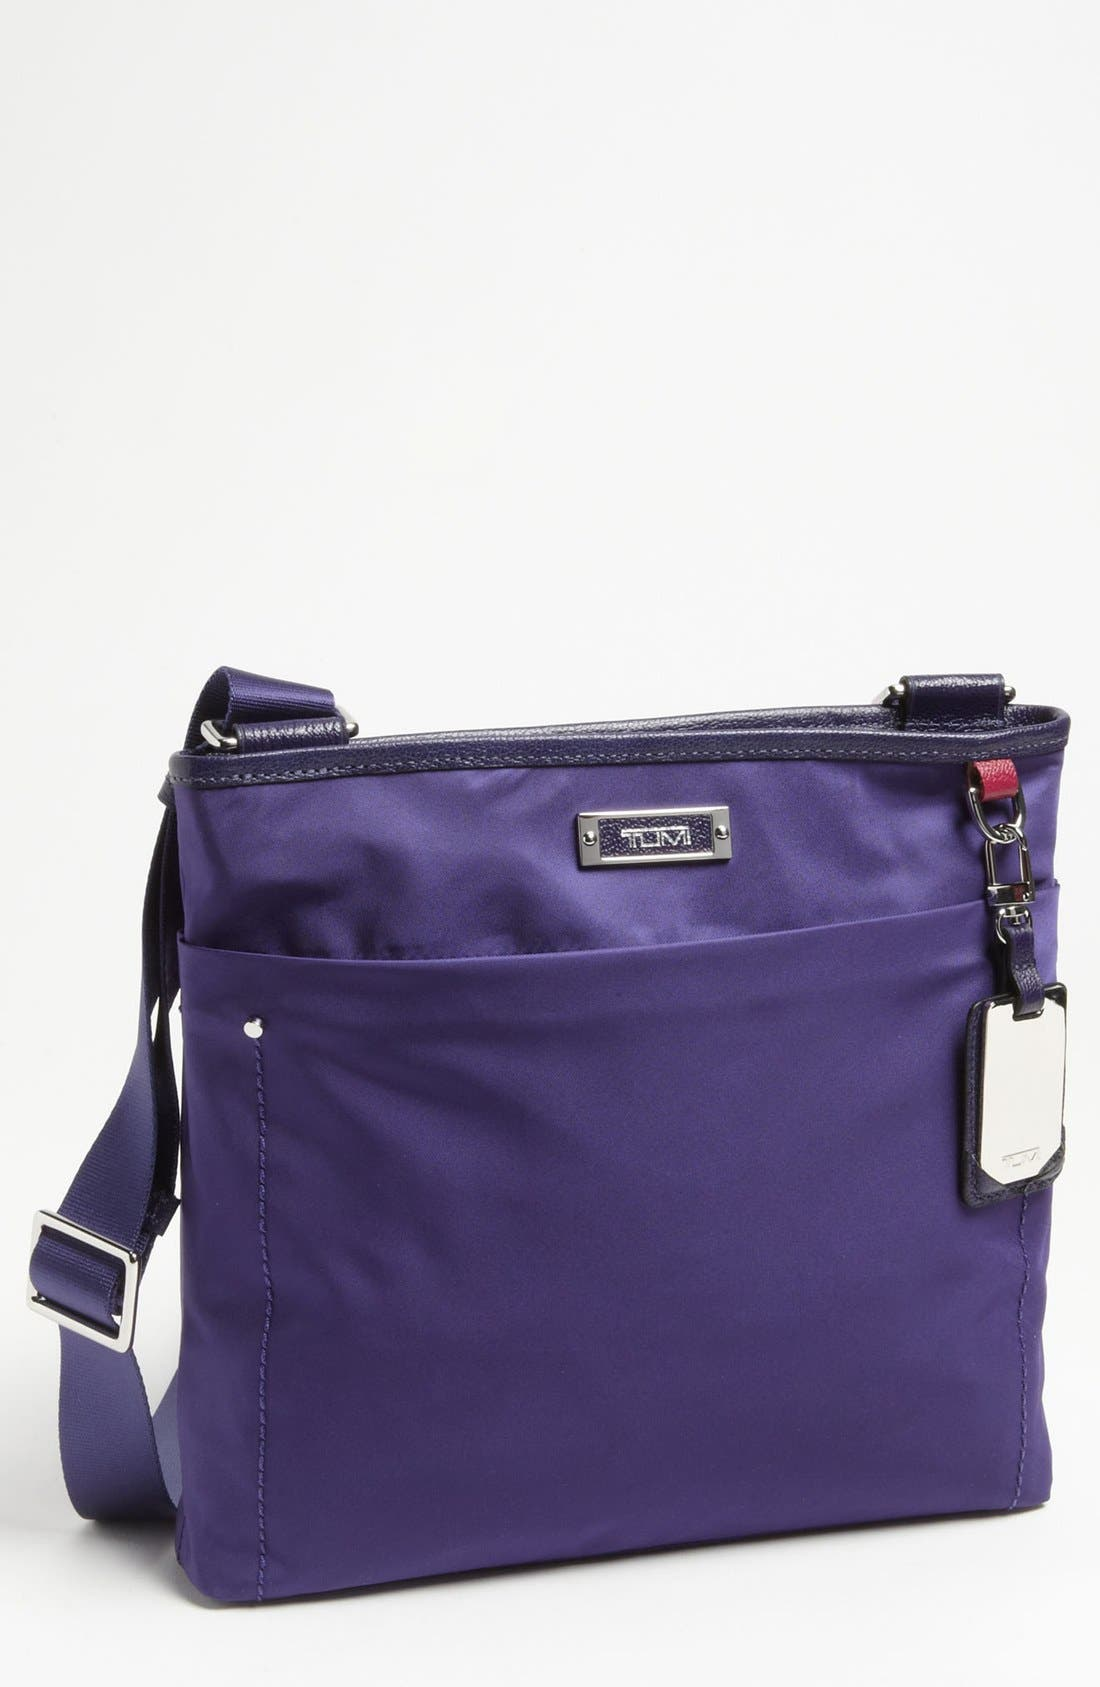 Alternate Image 1 Selected - Tumi 'Voyageur - Capri' Crossbody Bag